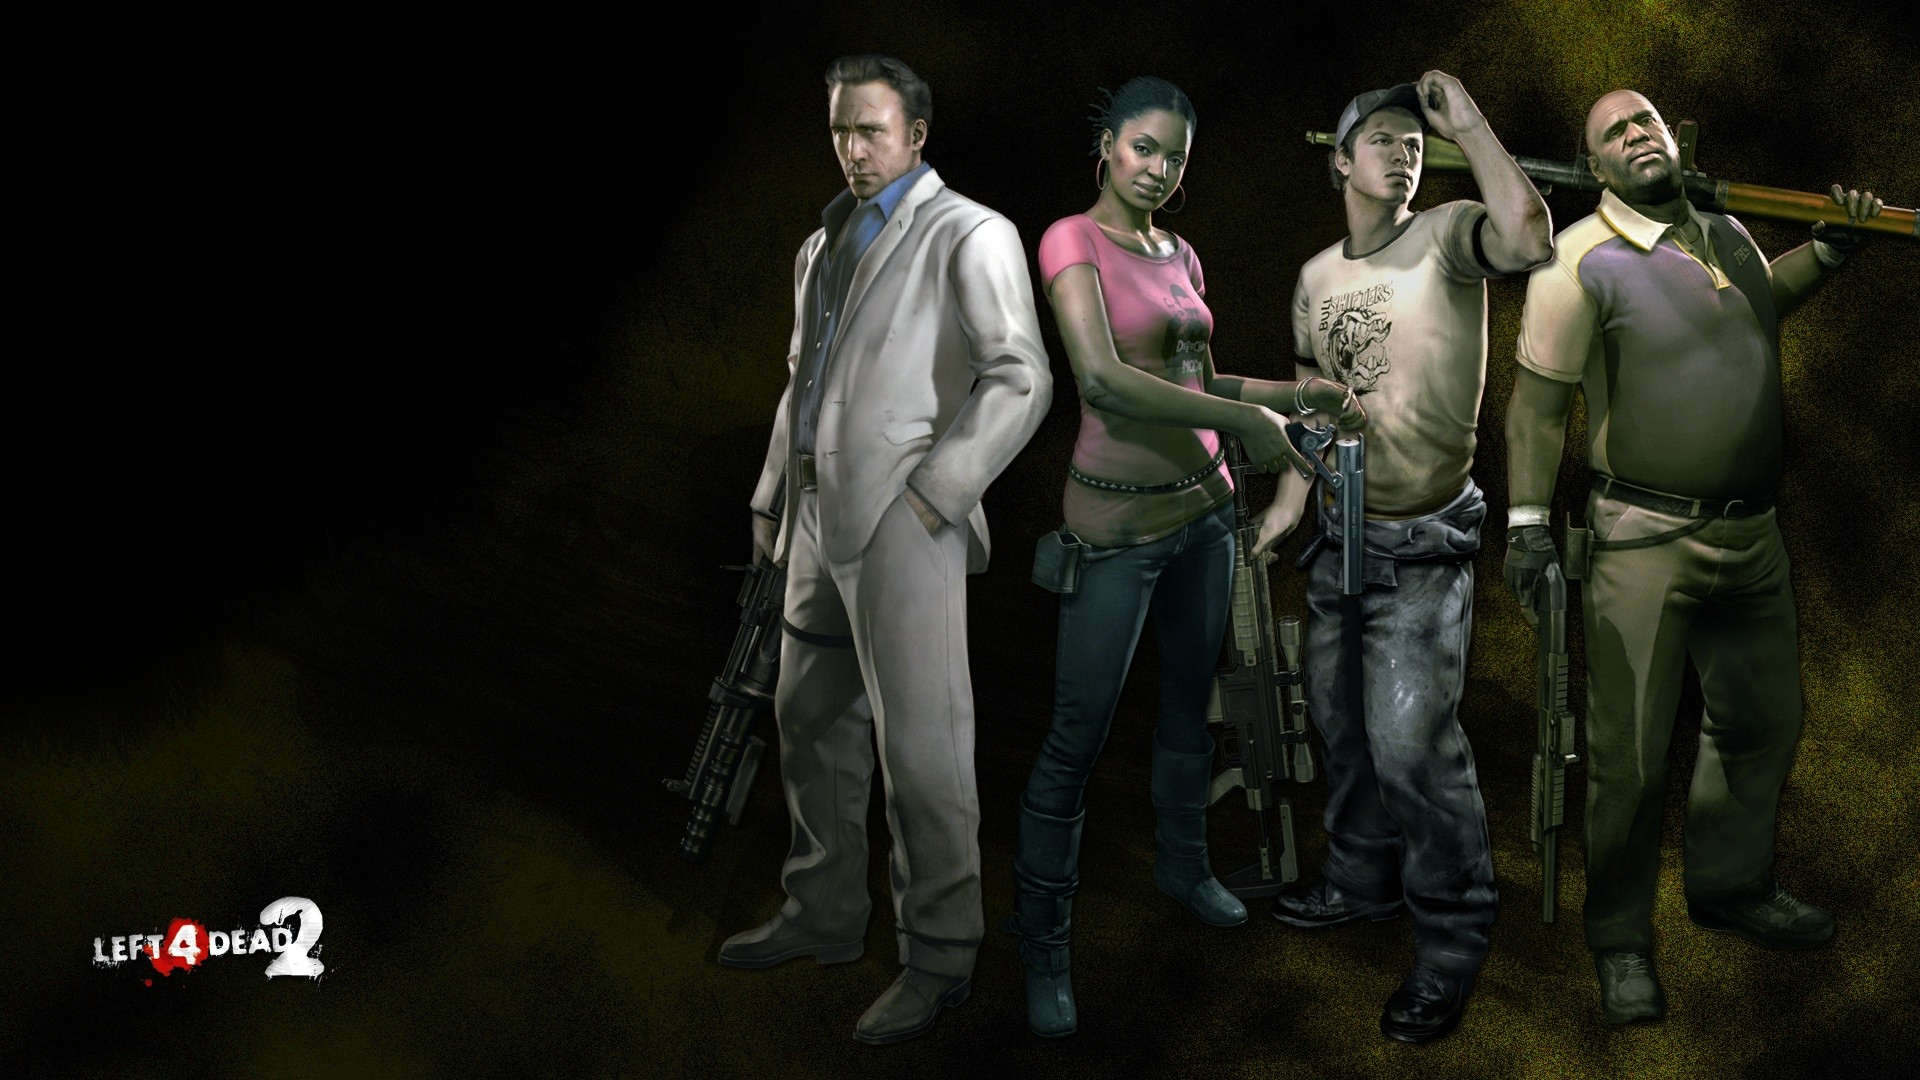 Res: 1920x1080, left 4 dead 2 images The Survivors HD wallpaper and background photos